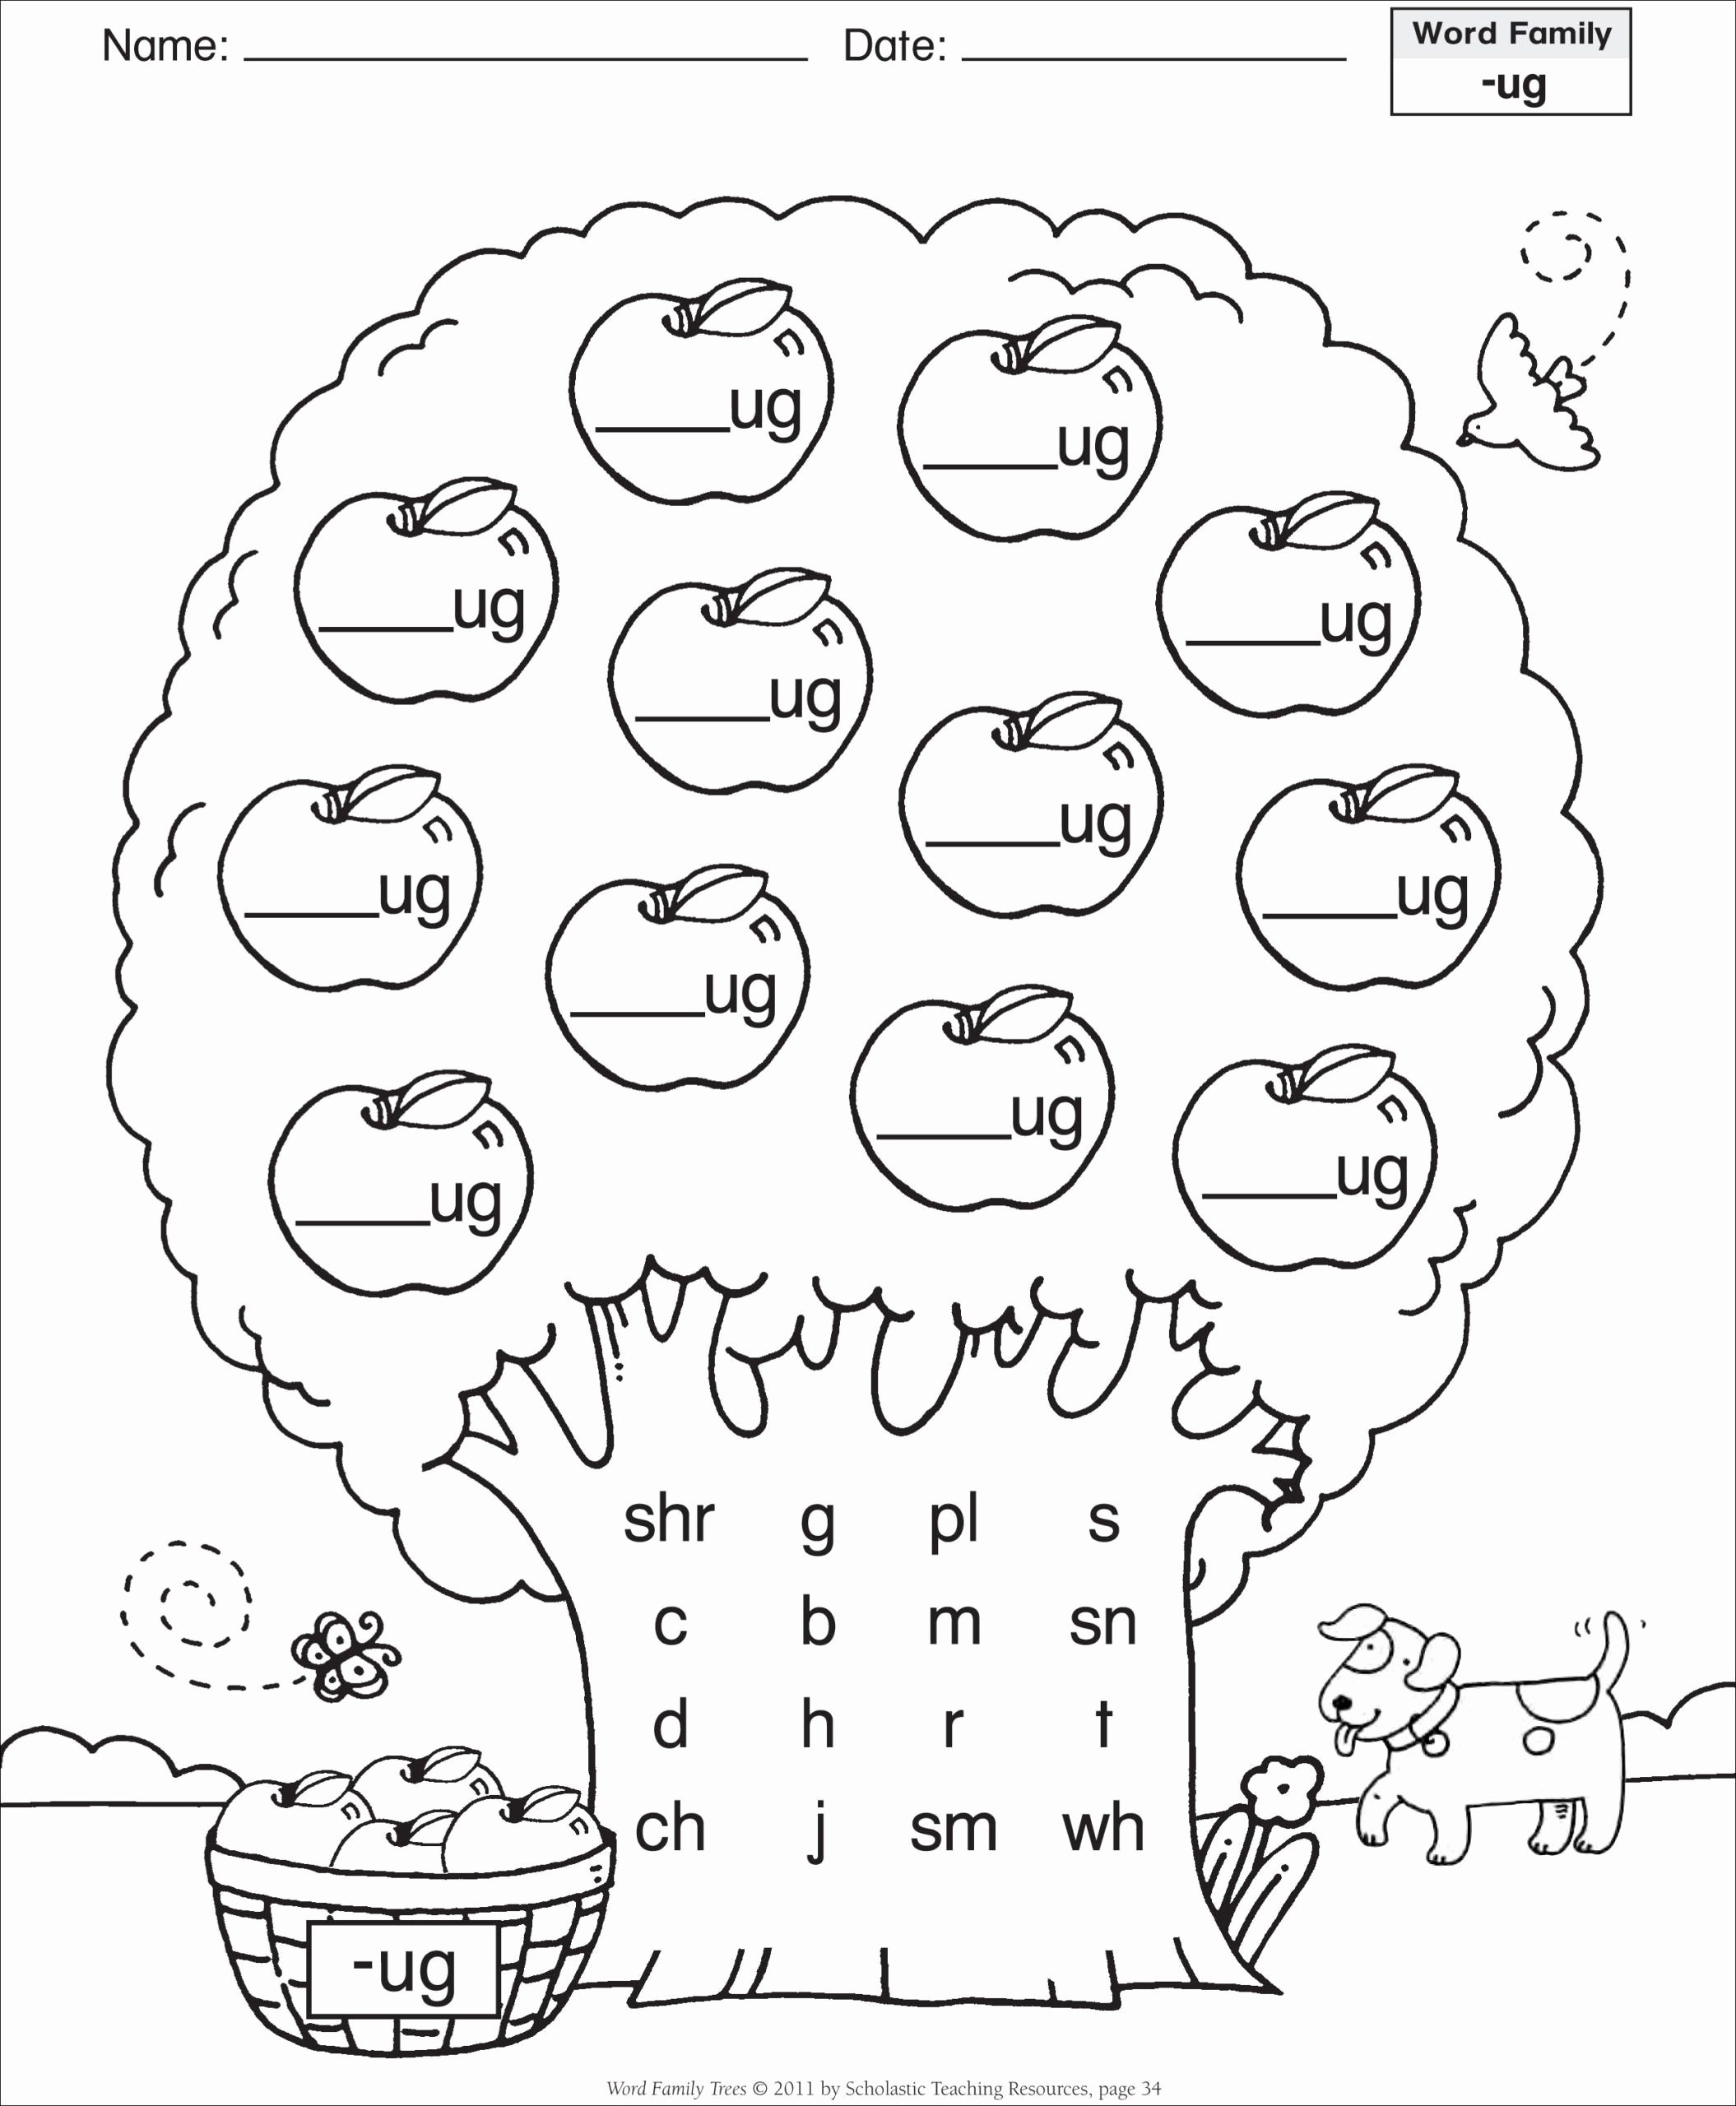 Tracing Worksheets for Preschoolers Beautiful Worksheets Printable Alphabet Letters Templates Tracing